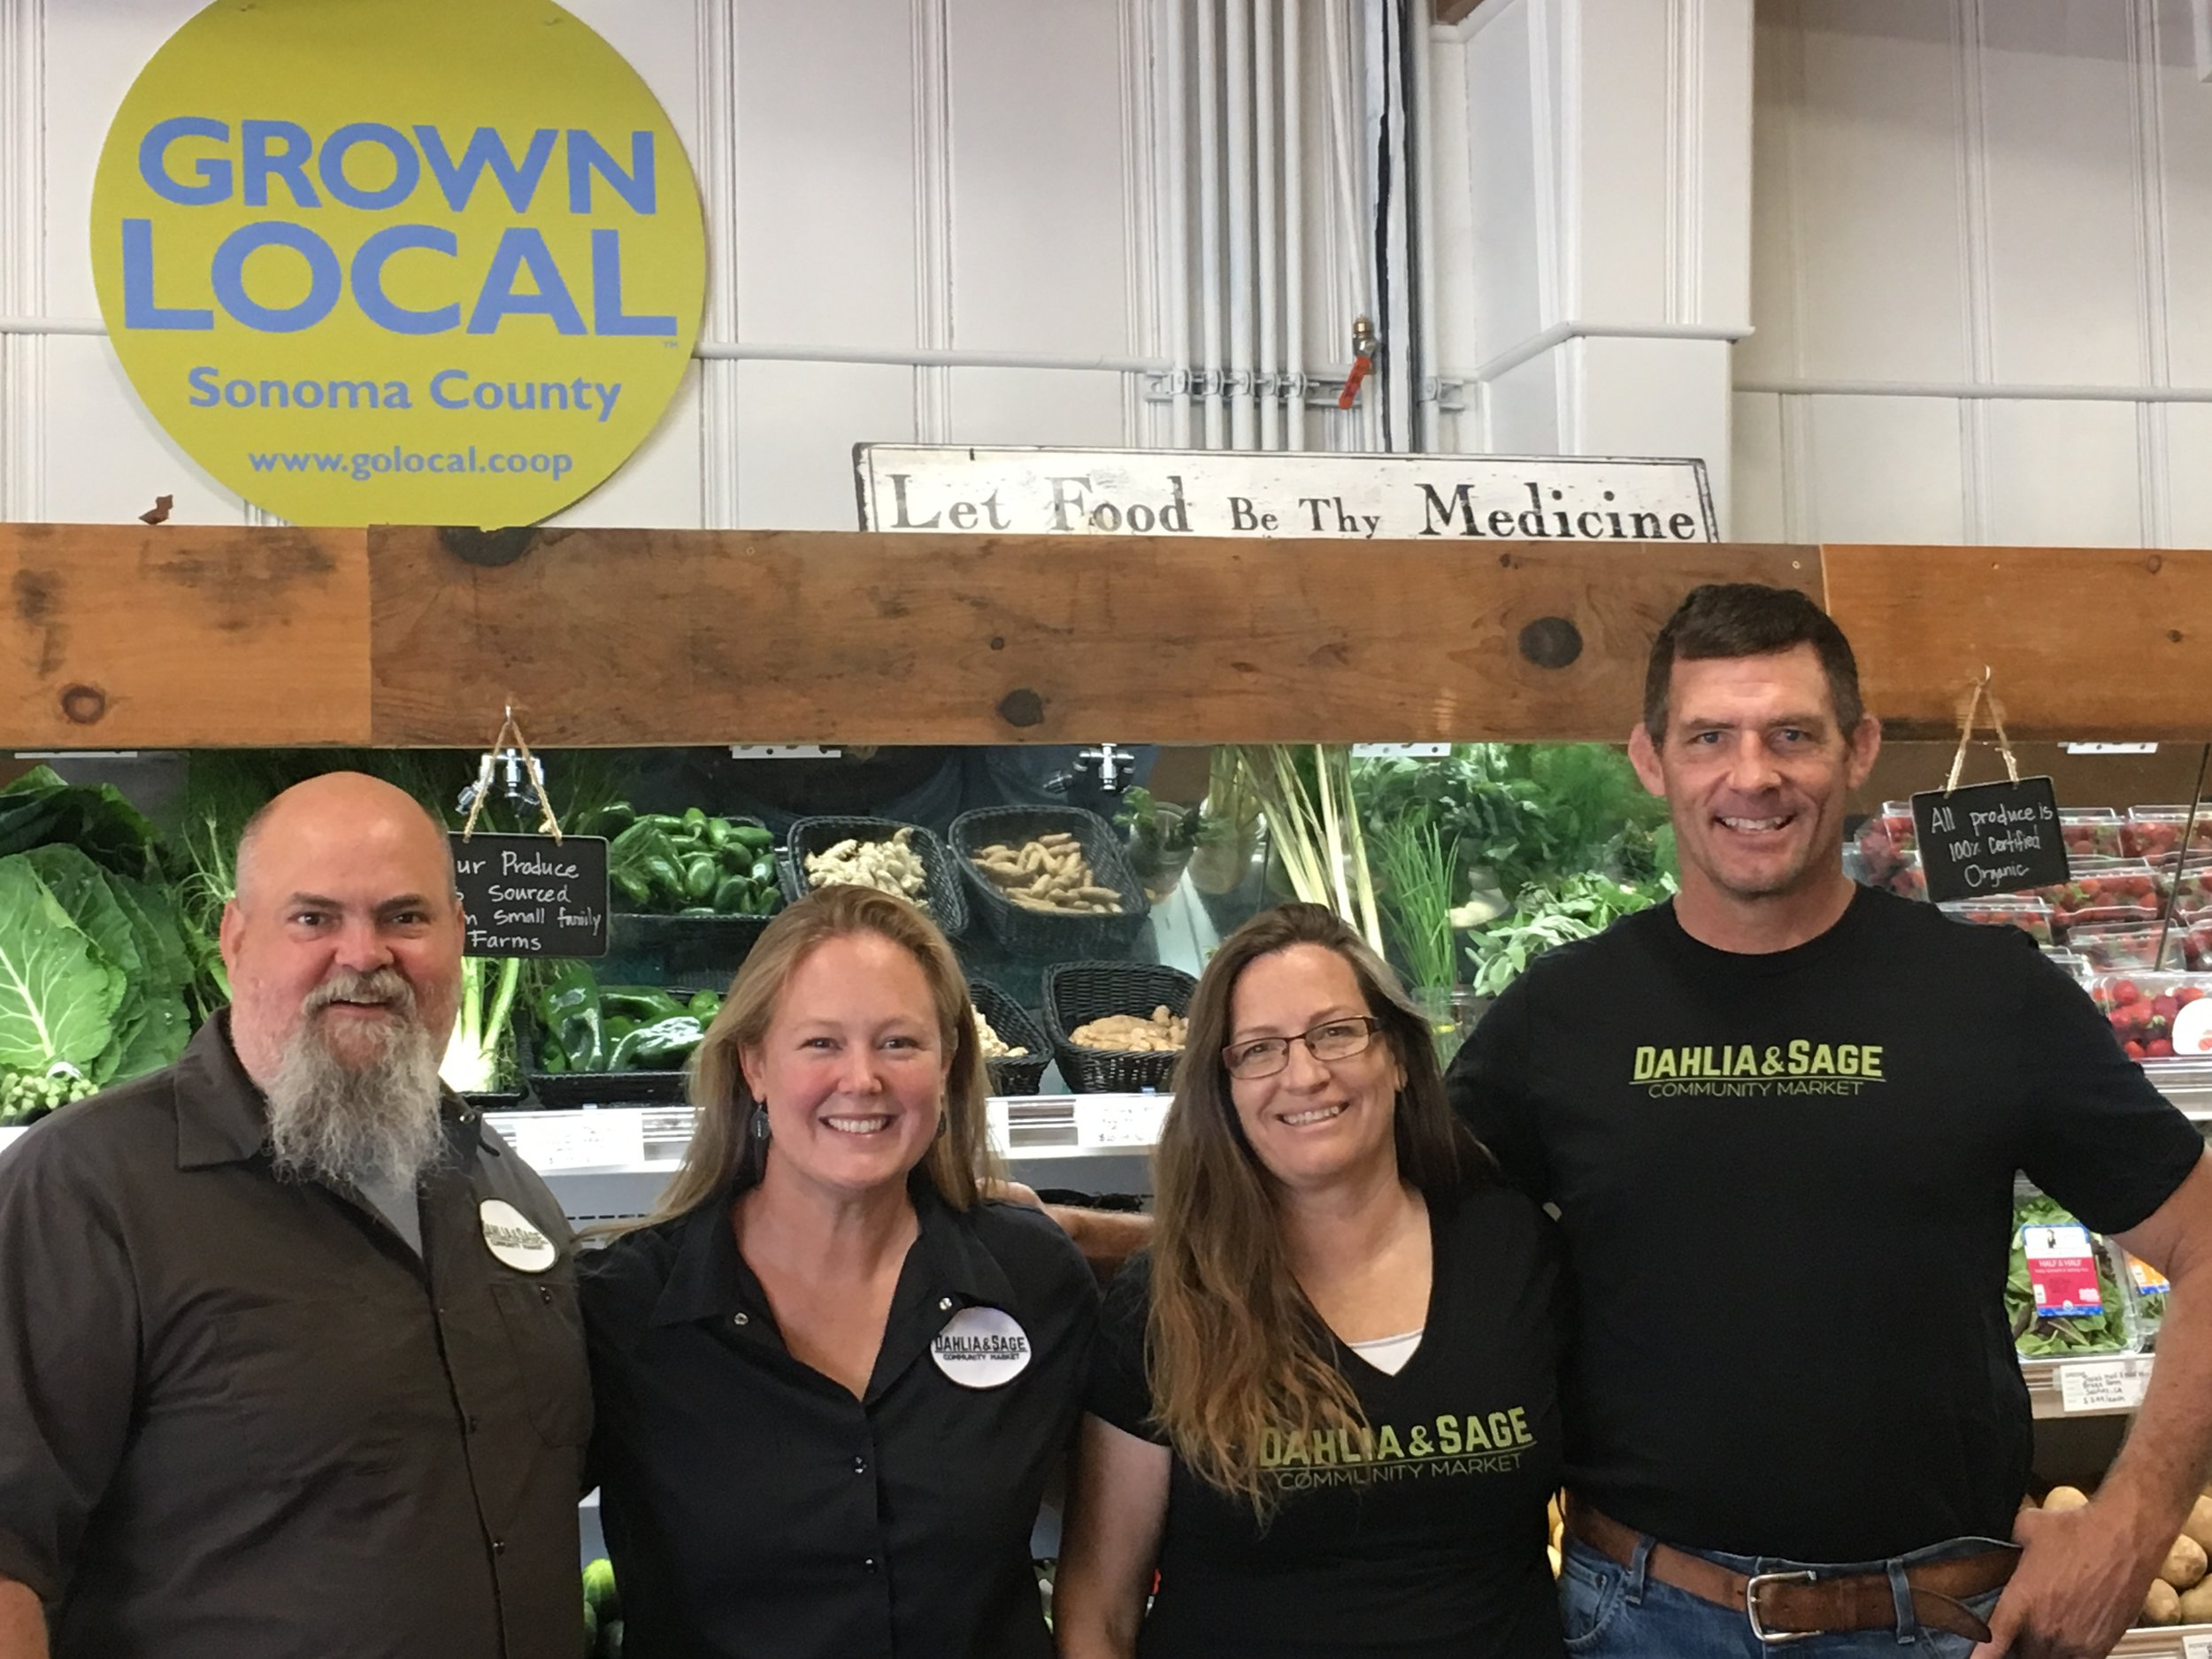 Meet the new owners . . . - Karie and Kurt Kelder and Frances and Peter Kruger – two local couples who are raising their families in Cloverdale and investing in their community wholeheartedly.